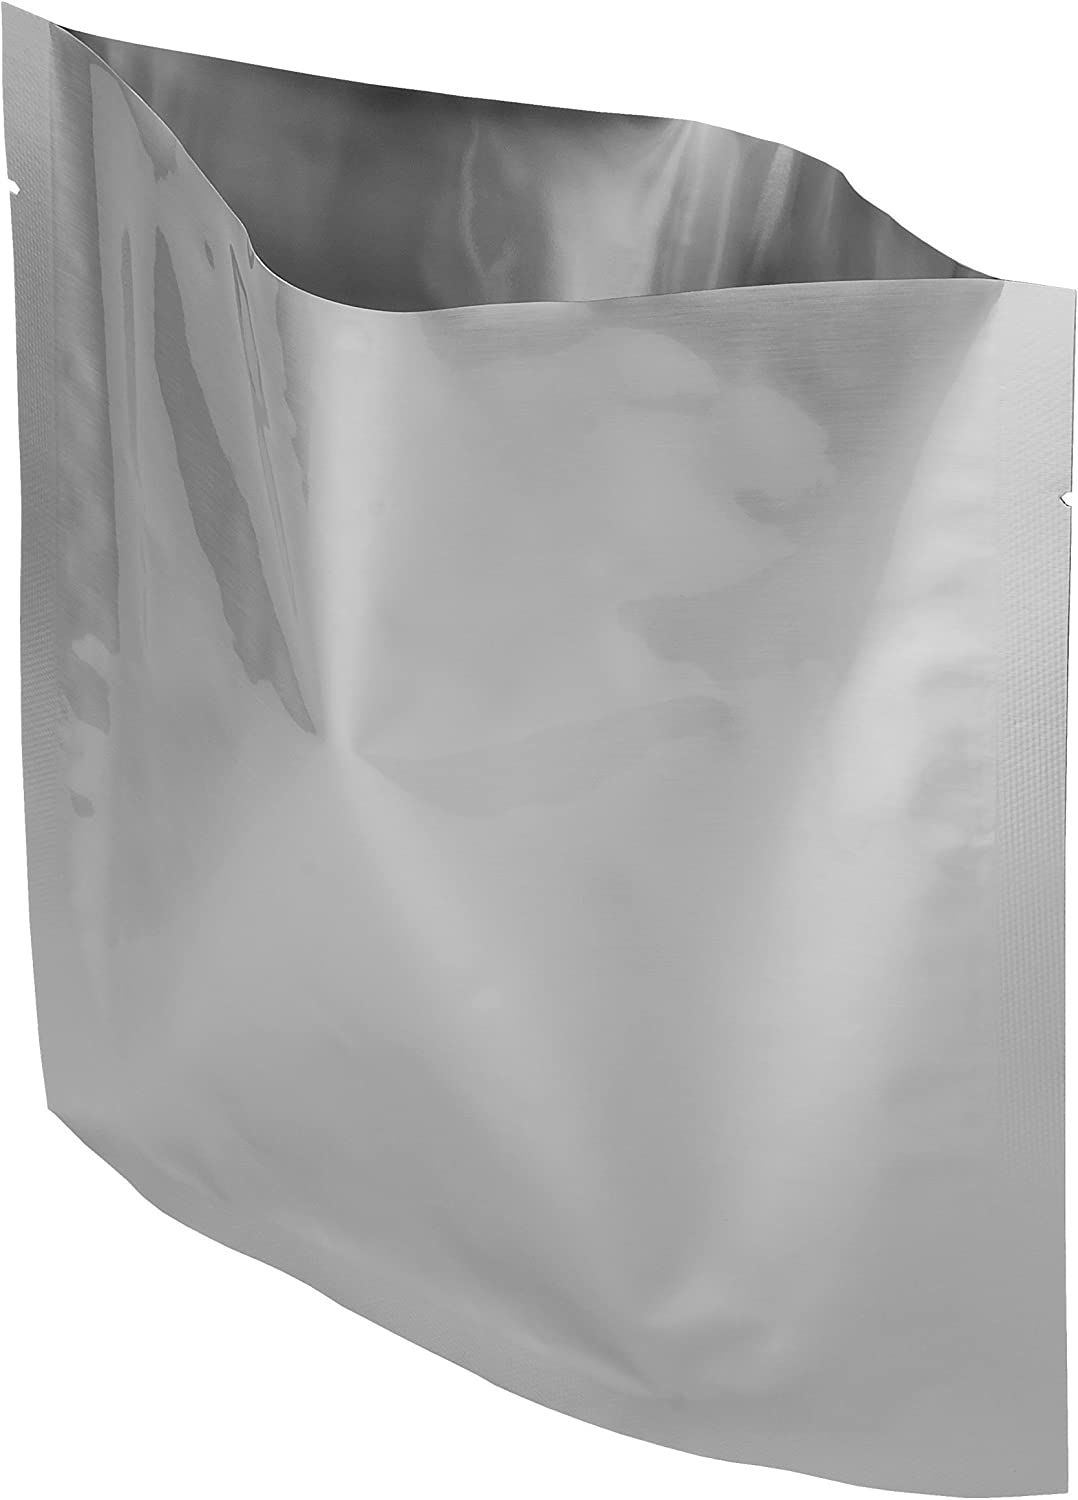 "Dry-Packs 1-Quart, 8""x8"" Mylar Moisture & Static Shielding Bags, 20 Pack-for Food Shipping & Storage, 20-1-Quart, Silver, 20 Count"